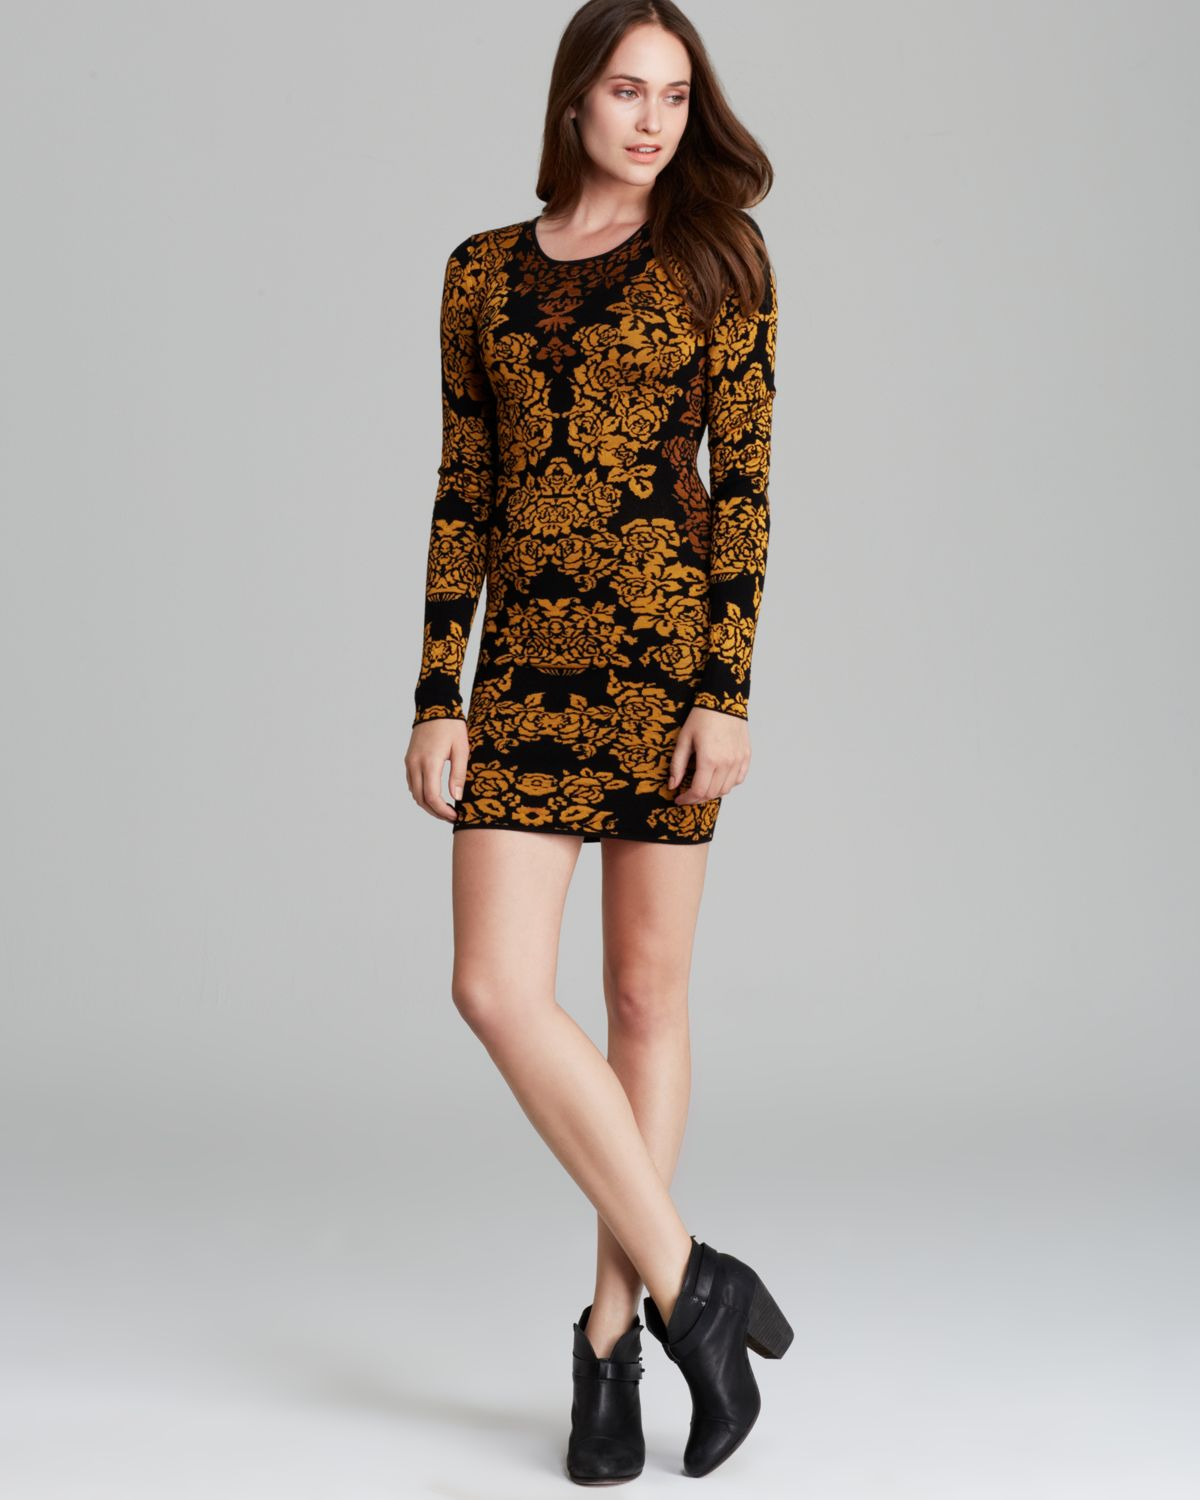 303e84be49 Lyst - Torn By Ronny Kobo Dress Mammie Bouquet Jacquard in Brown